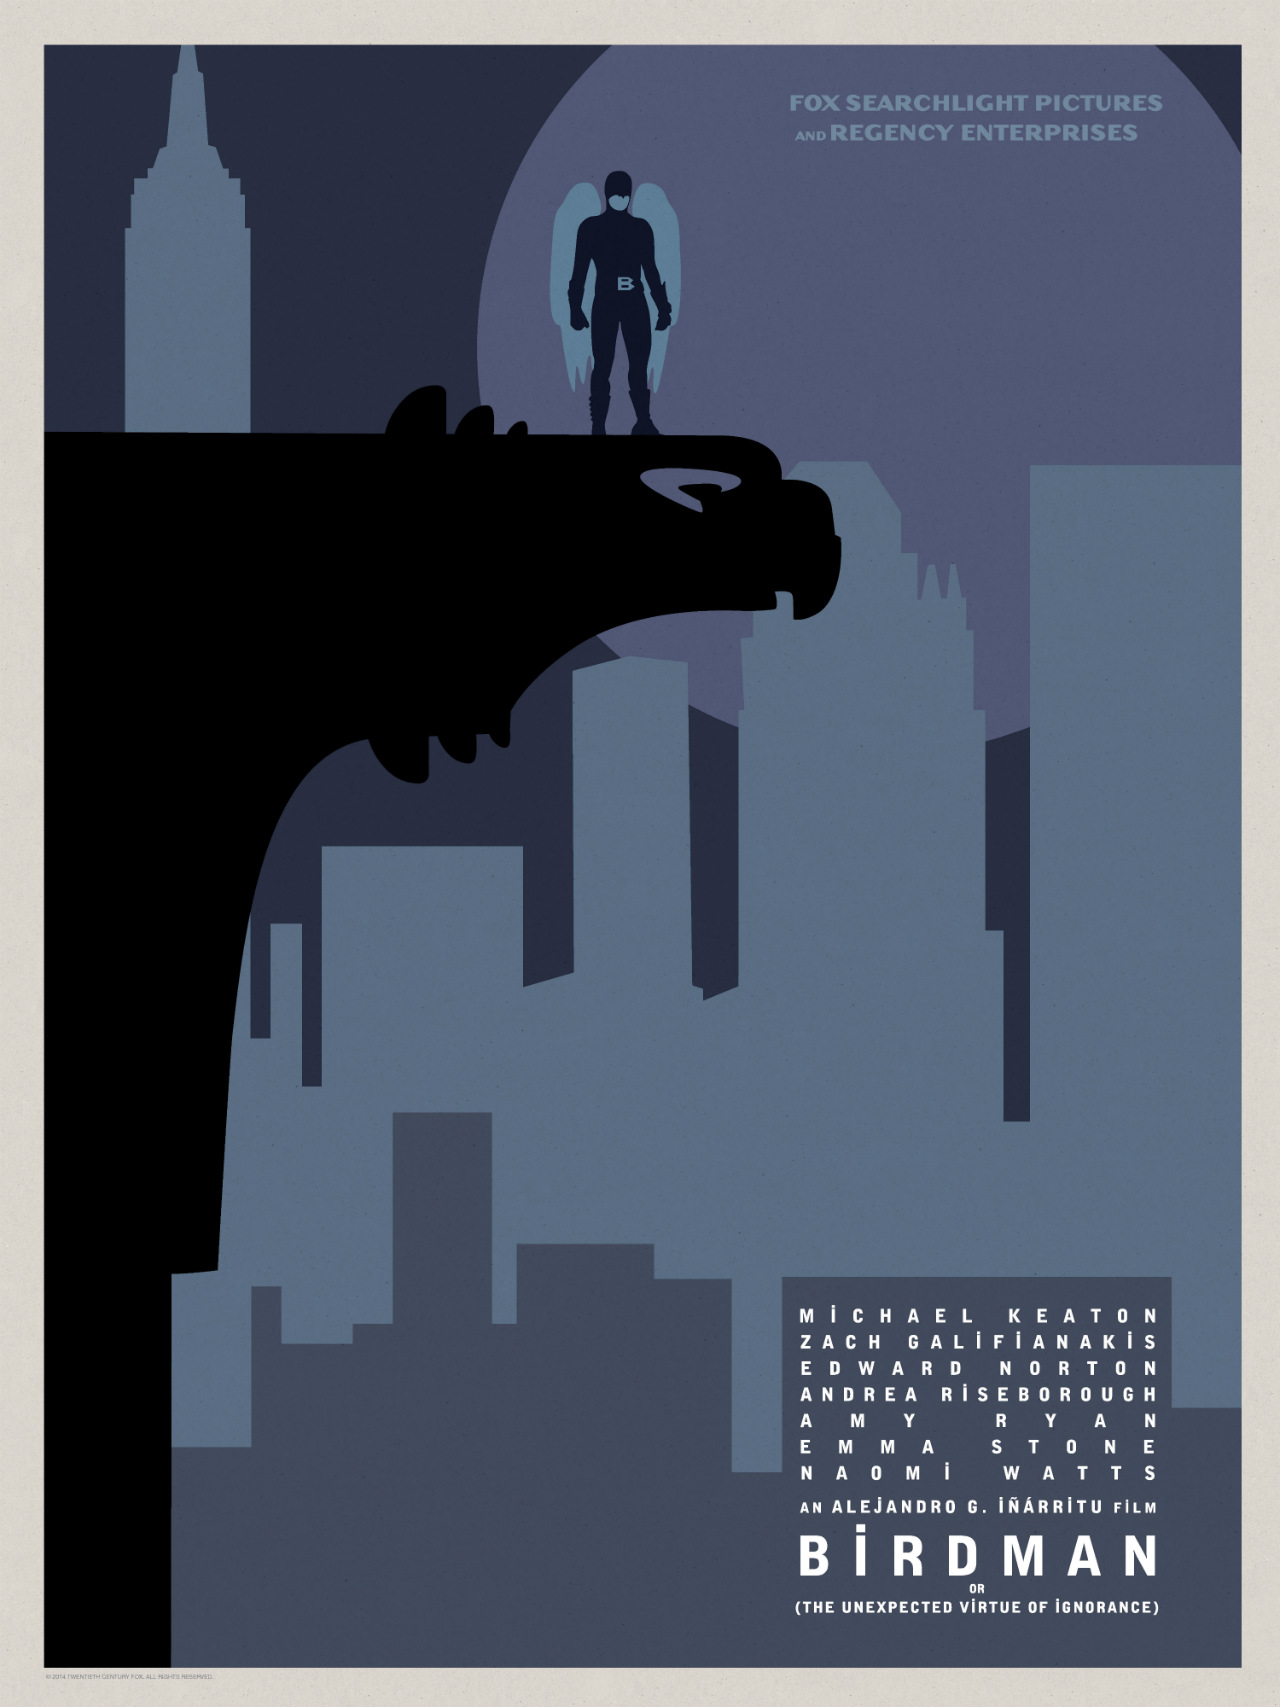 Birdman-Official Poster Minimalist XLG-13OUTUBRO2014-05